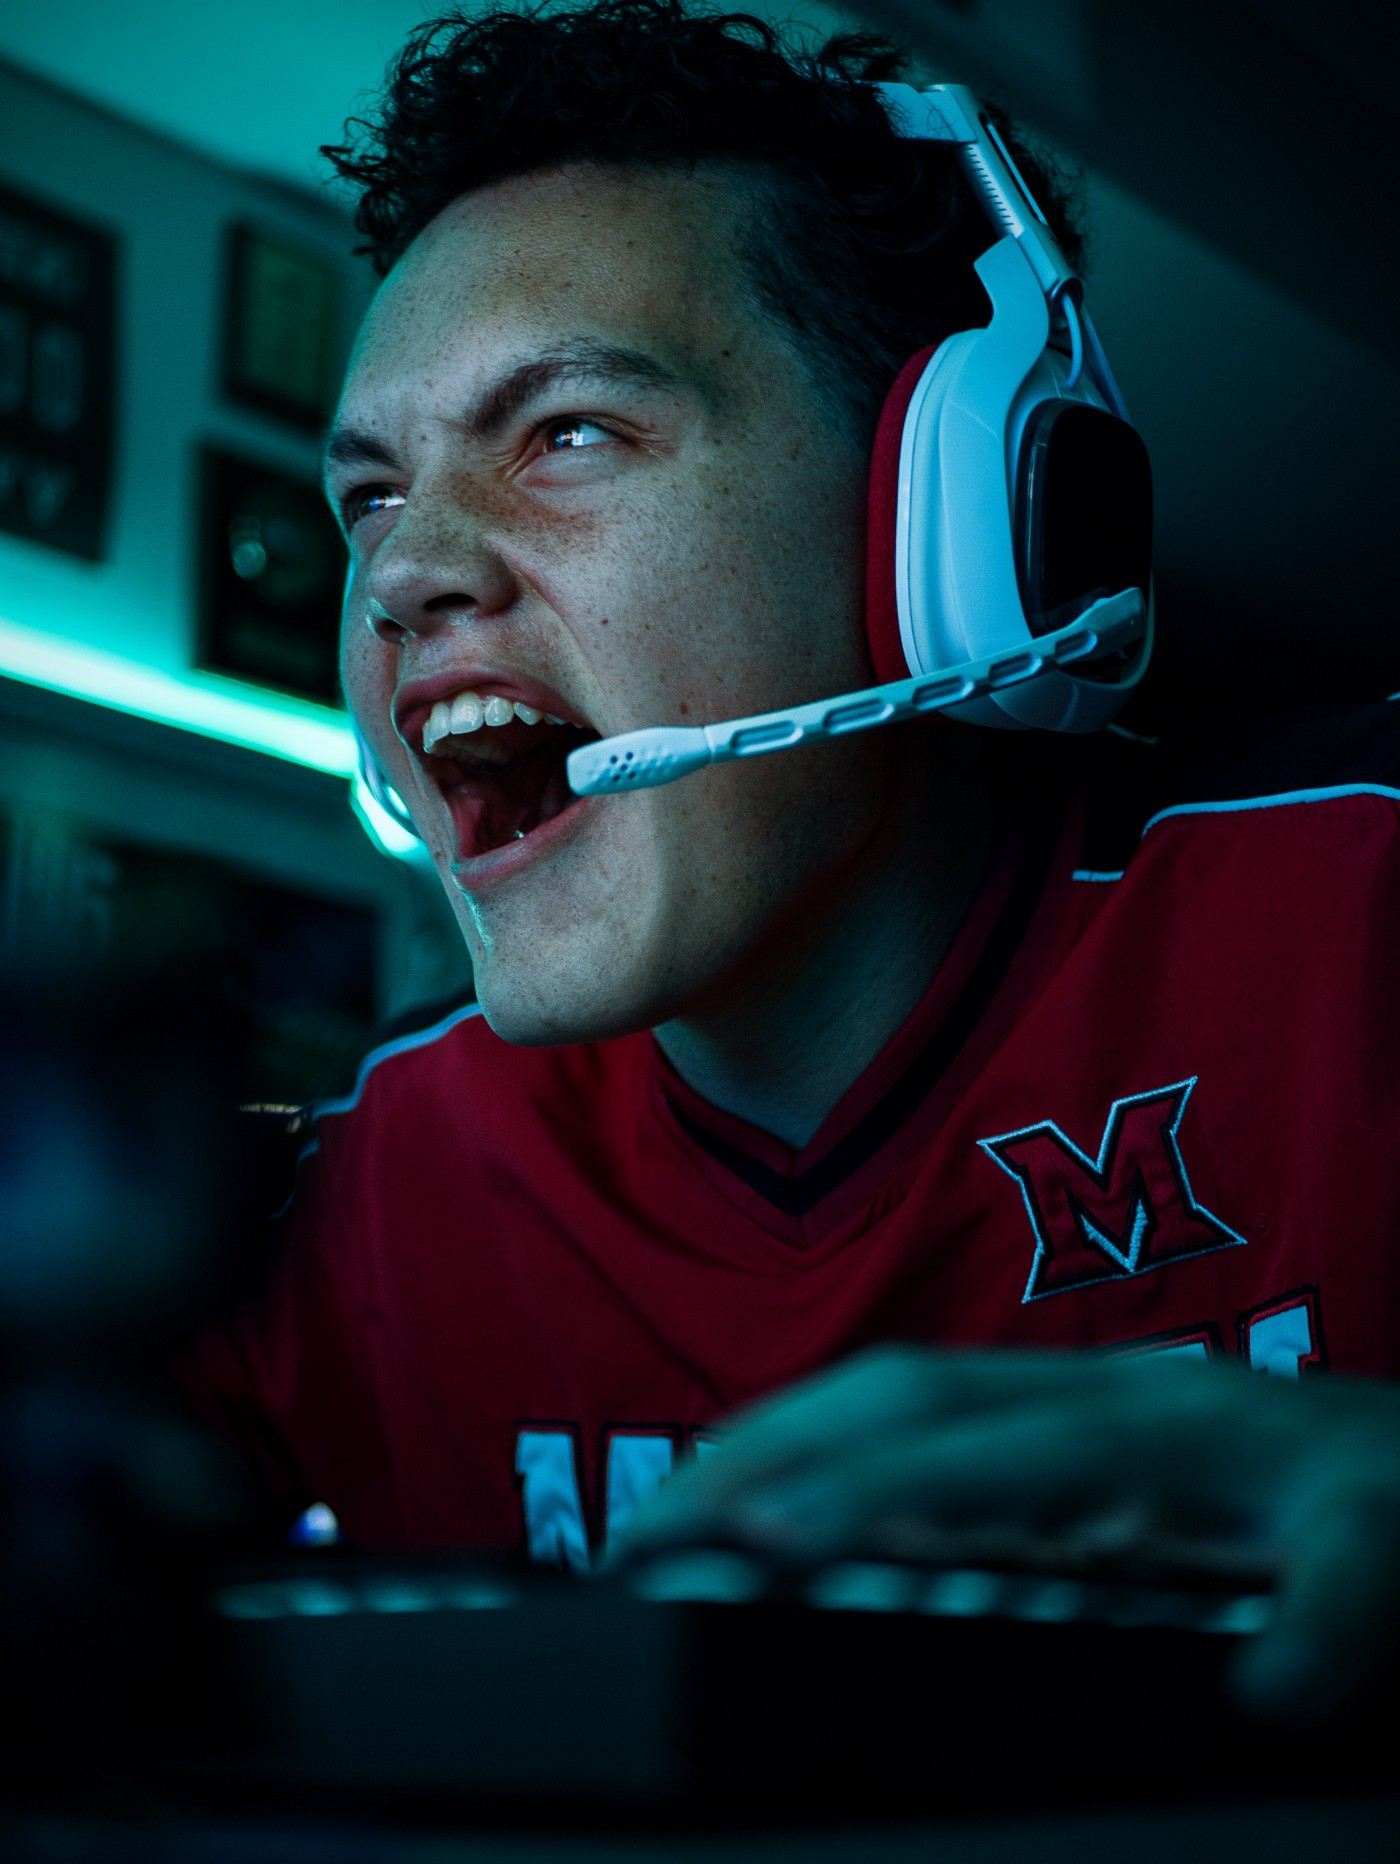 Young man screaming with Headsets on